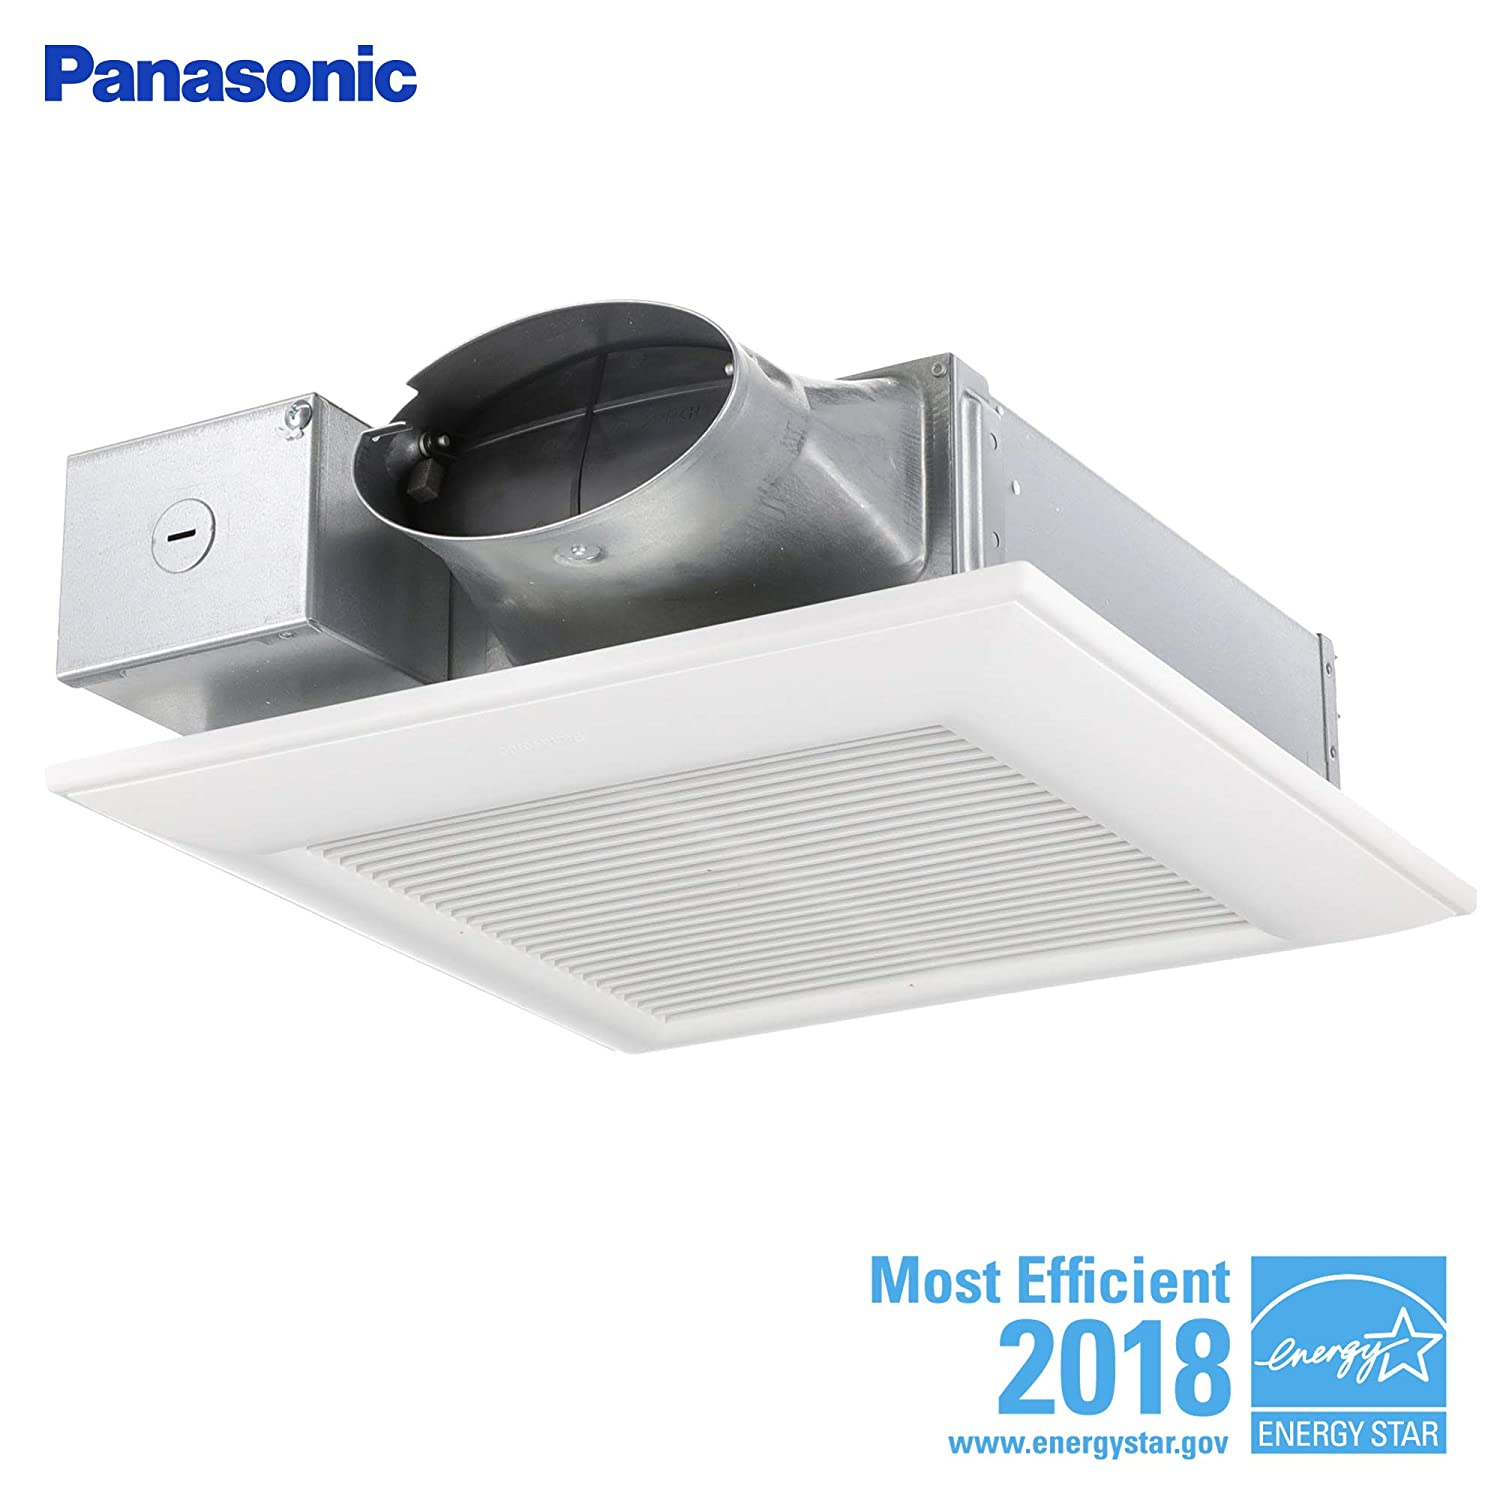 Panasonic FV-0510VS1 WhisperValue DC fan